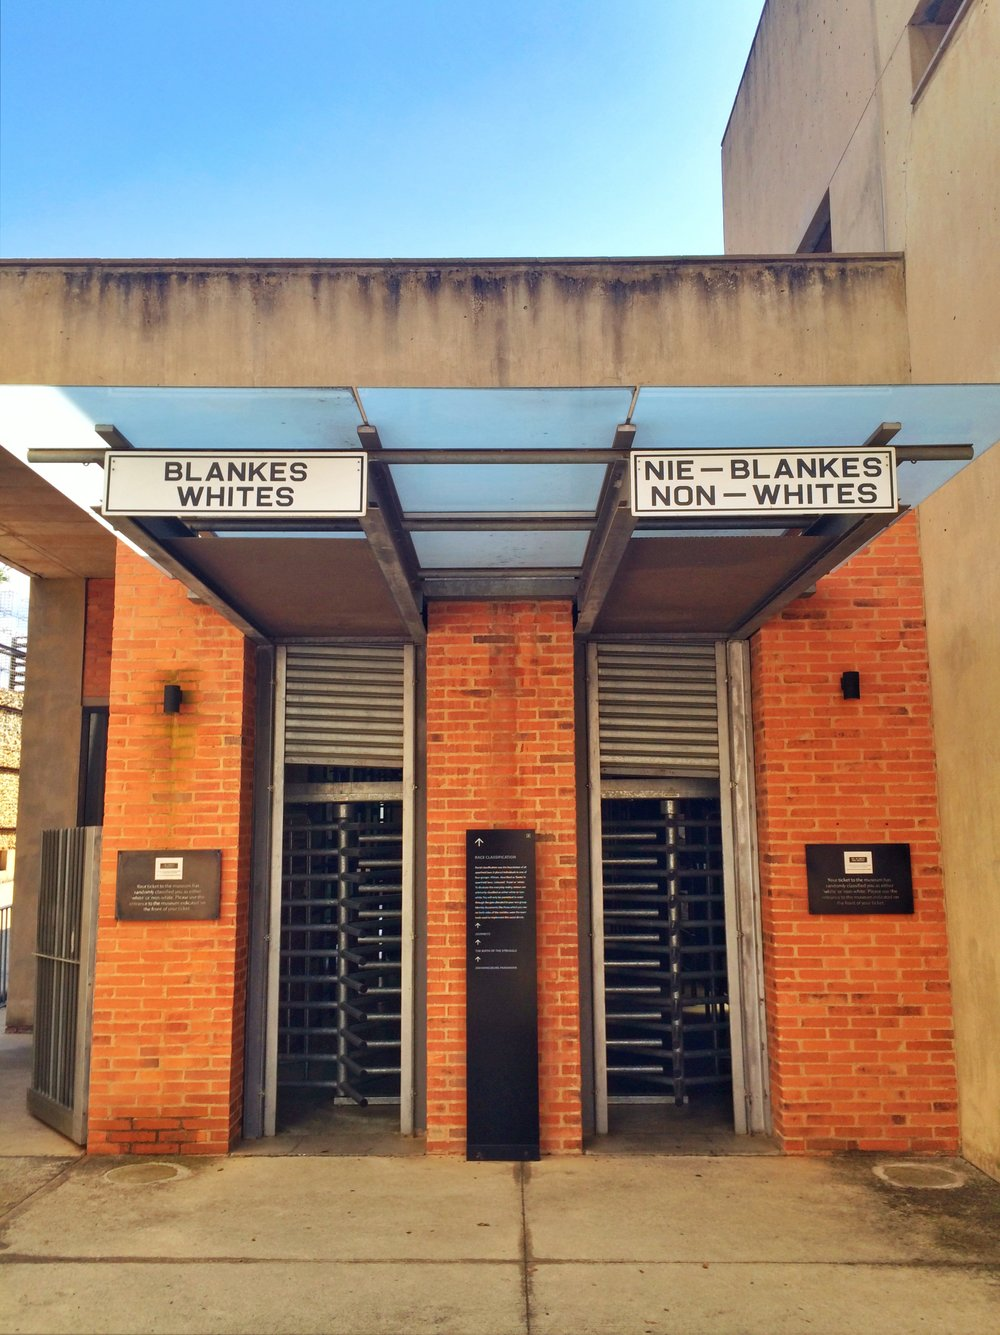 Entrance to the Apartheid Museum in Johannesburg. Left for whites, right for non-whites, depending on your randomly assigned ticket.